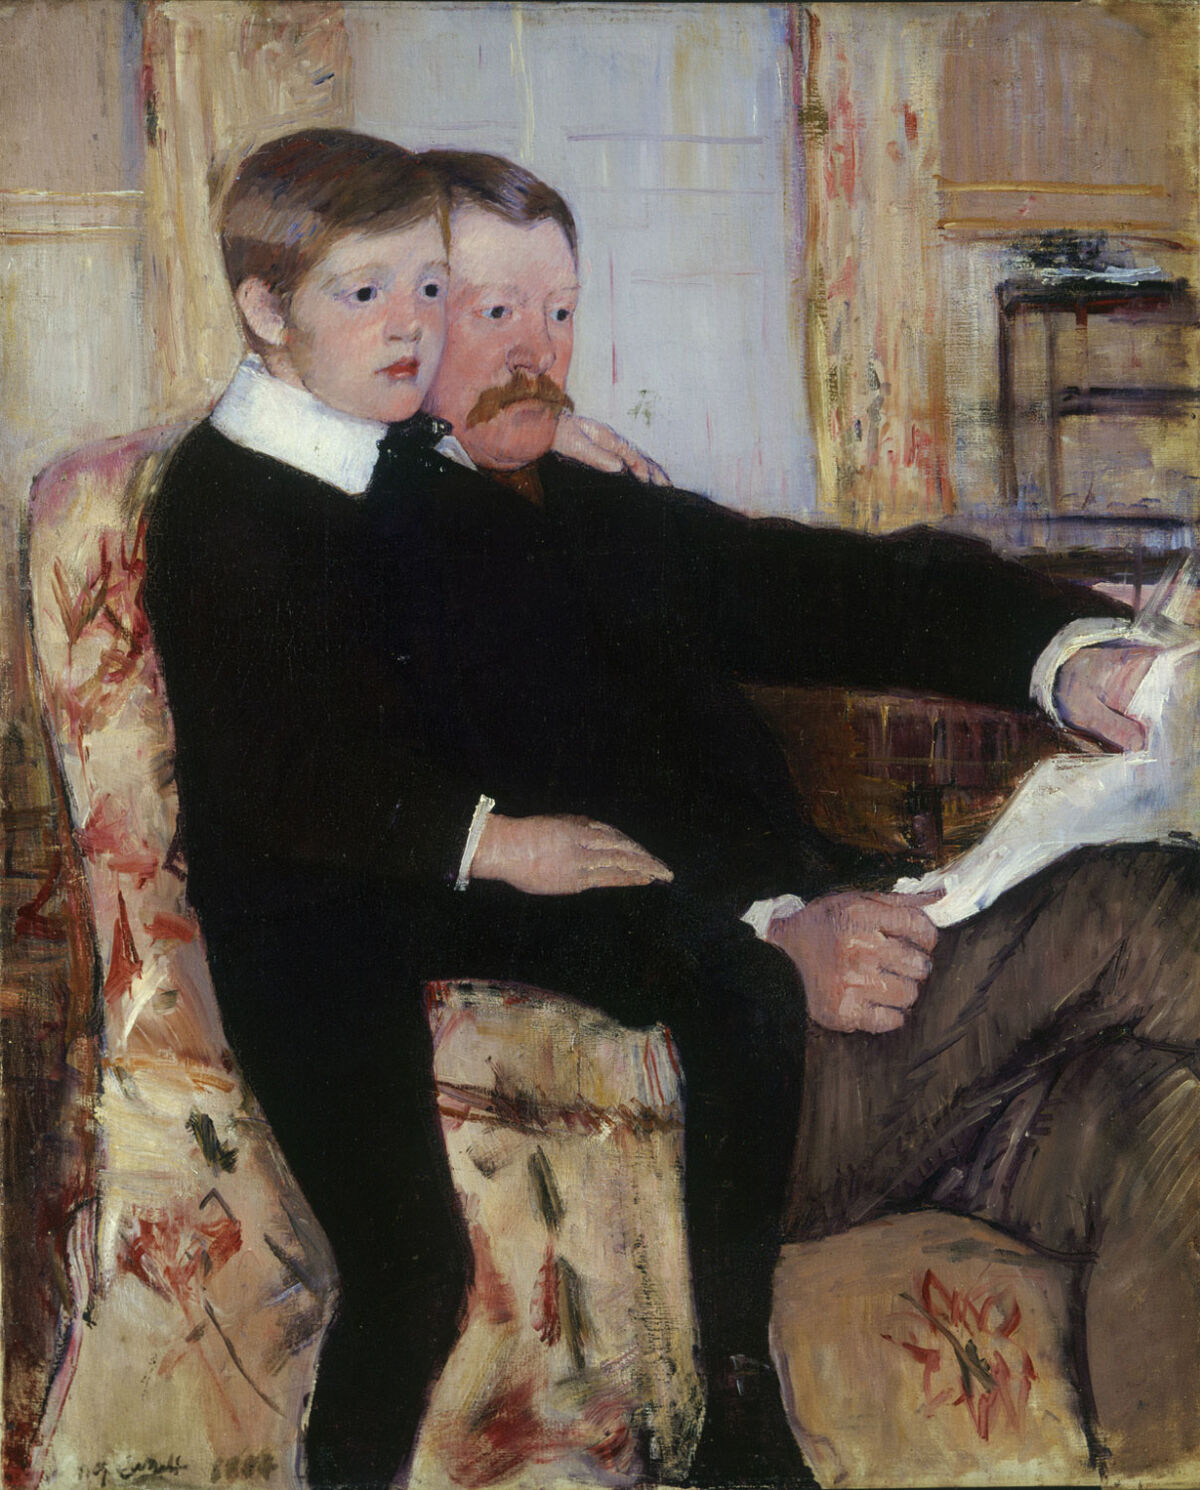 Mary Cassatt, Portrait of Alexander J. Cassatt and His Son, Robert Kelso Cassatt, 1884. Image via Wikimedia Commons.